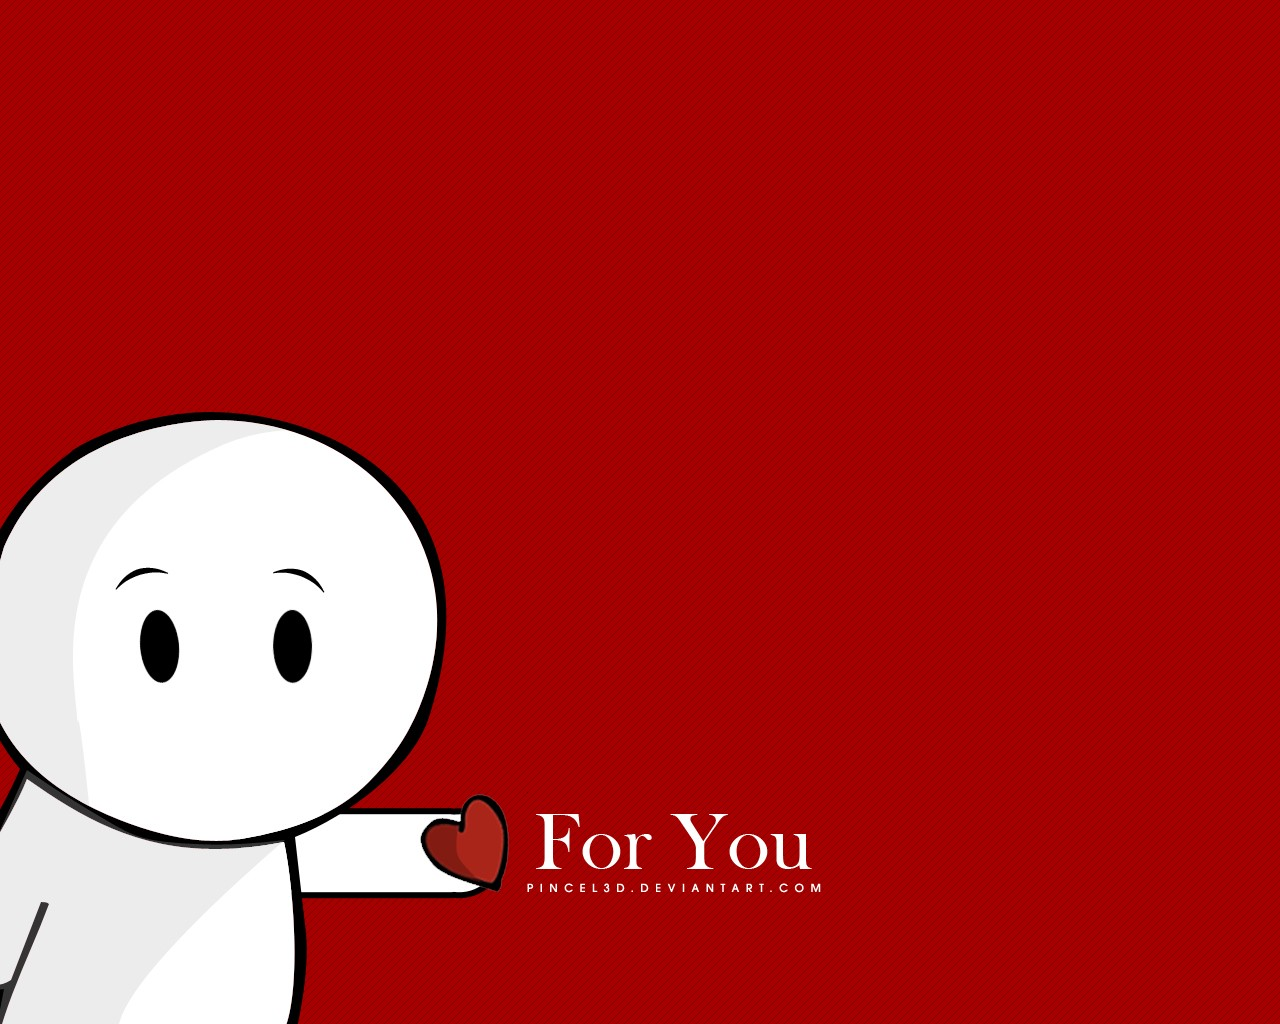 I Love You My Love Wallpaper : I Love You Wallpapers HD A16 - HD Desktop Wallpapers 4k HD